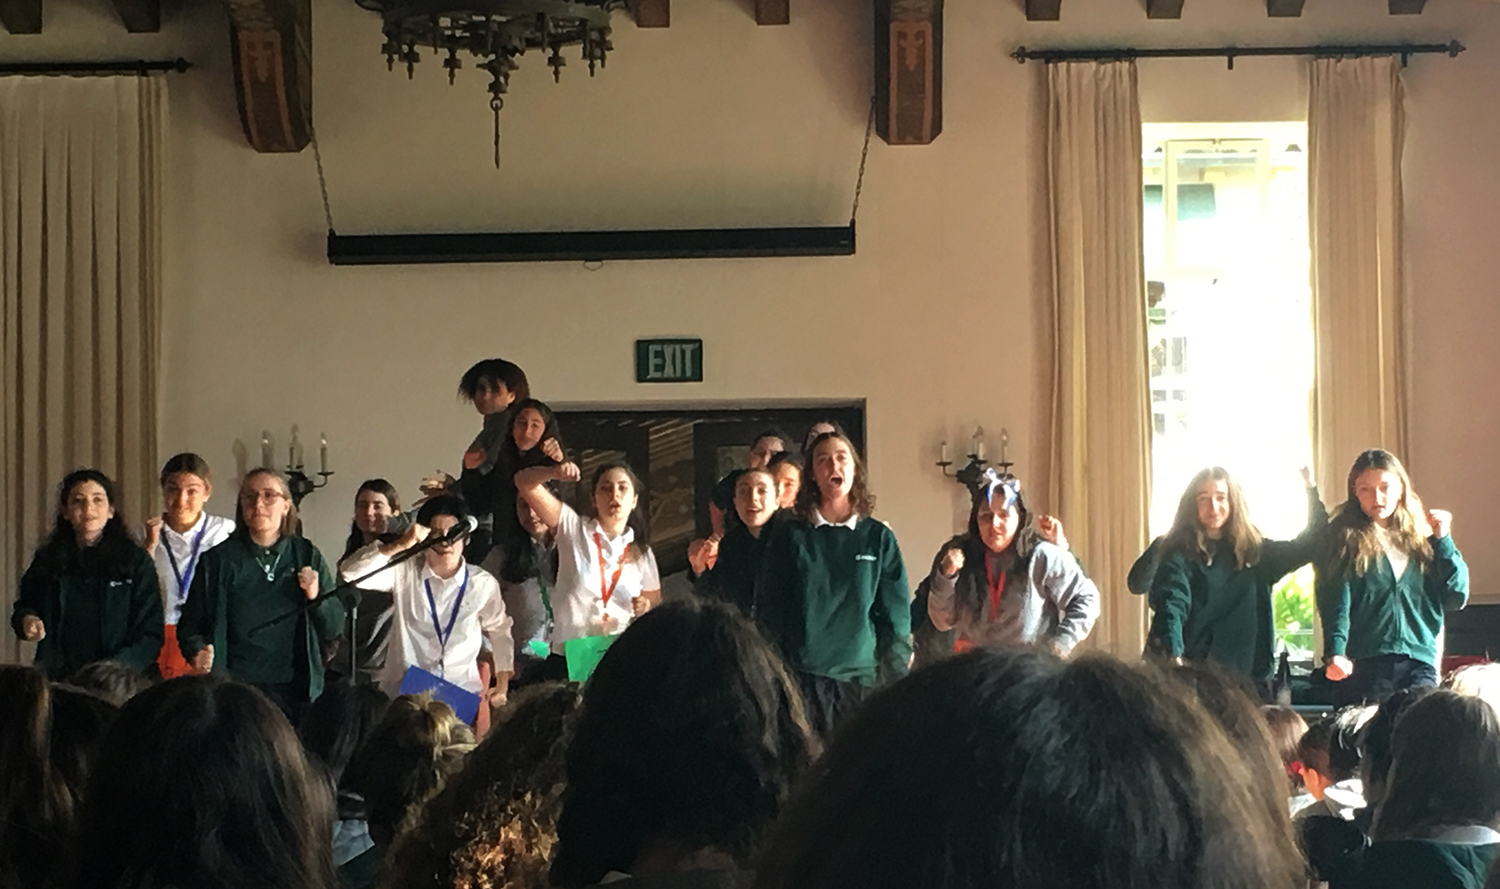 The musical cast sings a song to the upper school in the Dining Hall. The show will make its debut Dec. 8.